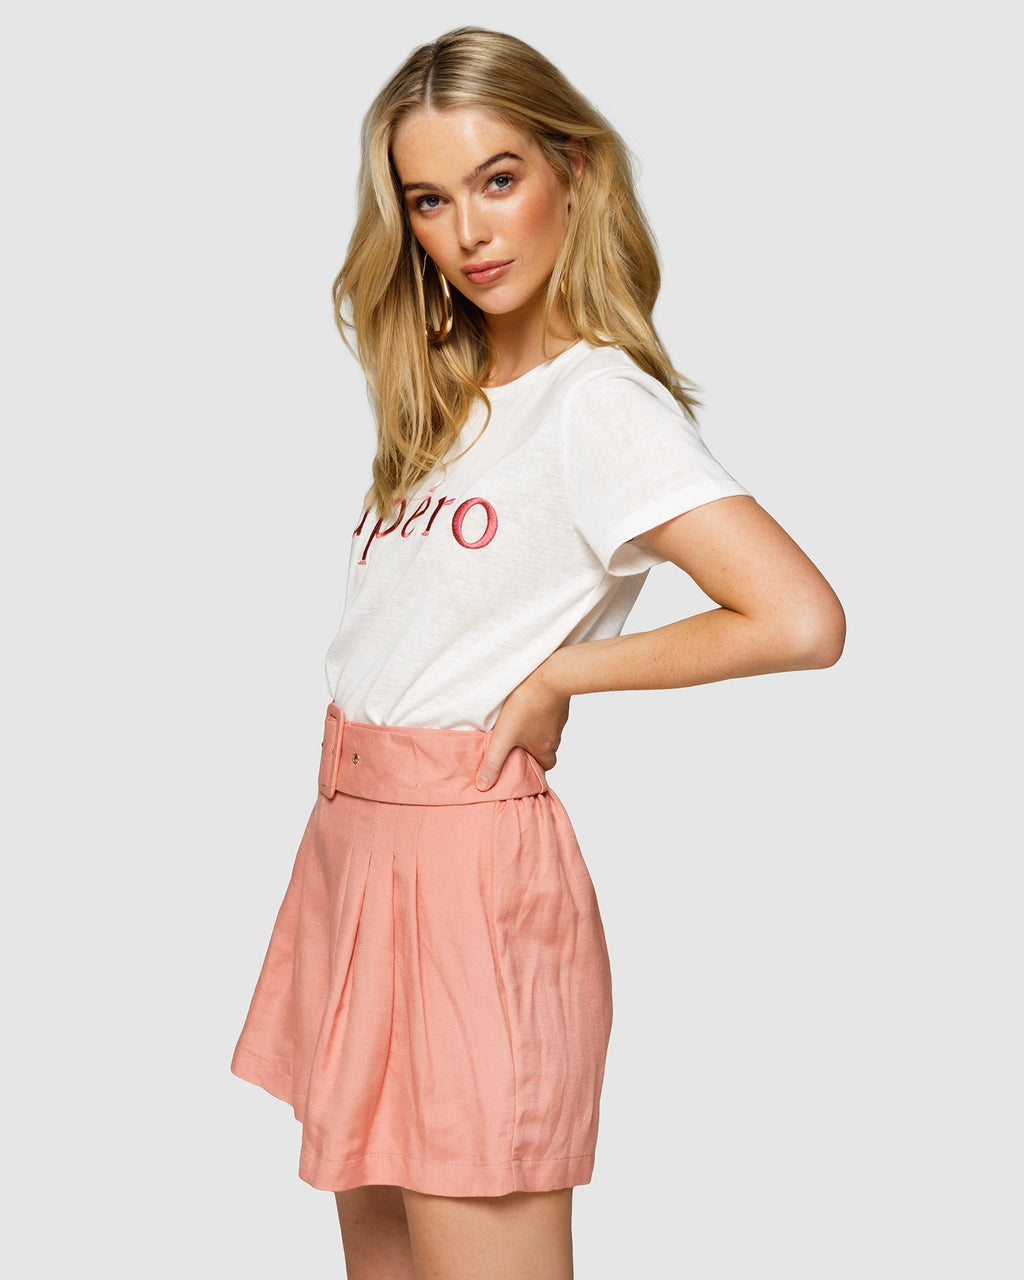 Femme Embroidered Tee - Apero White/Burnt Rose